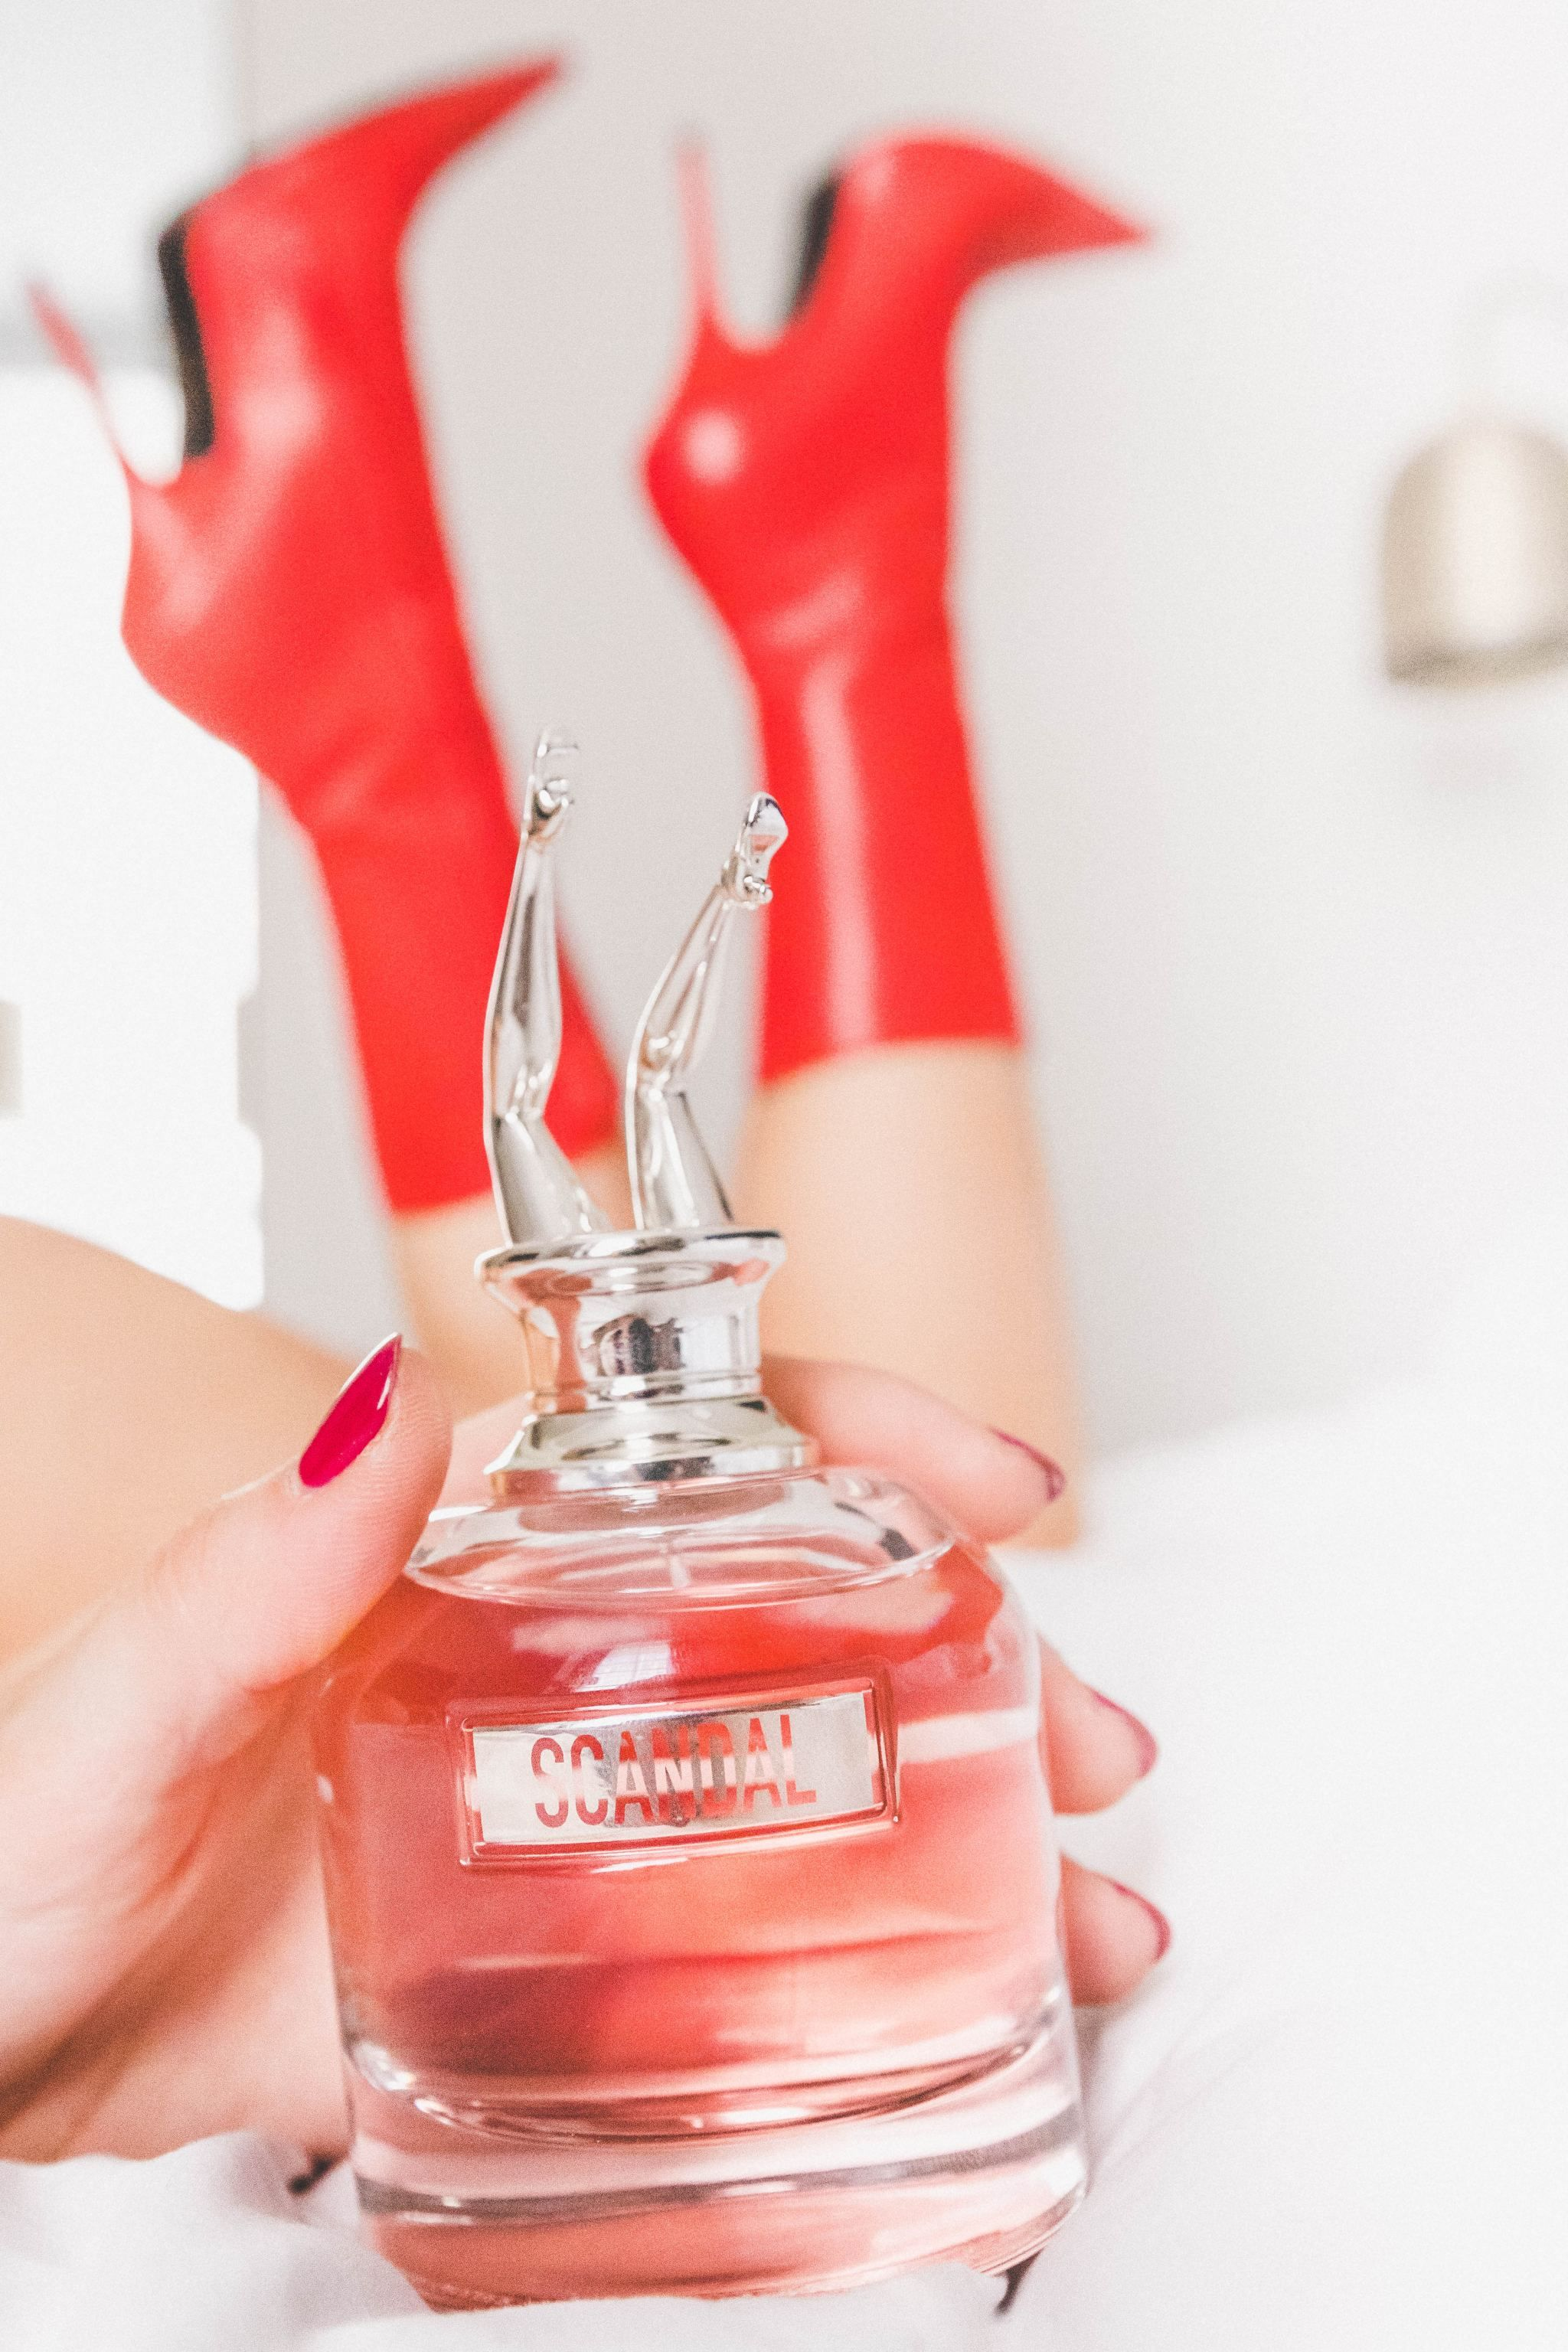 Starting A Scandal With Jean Paul Gaultier The Little World Of